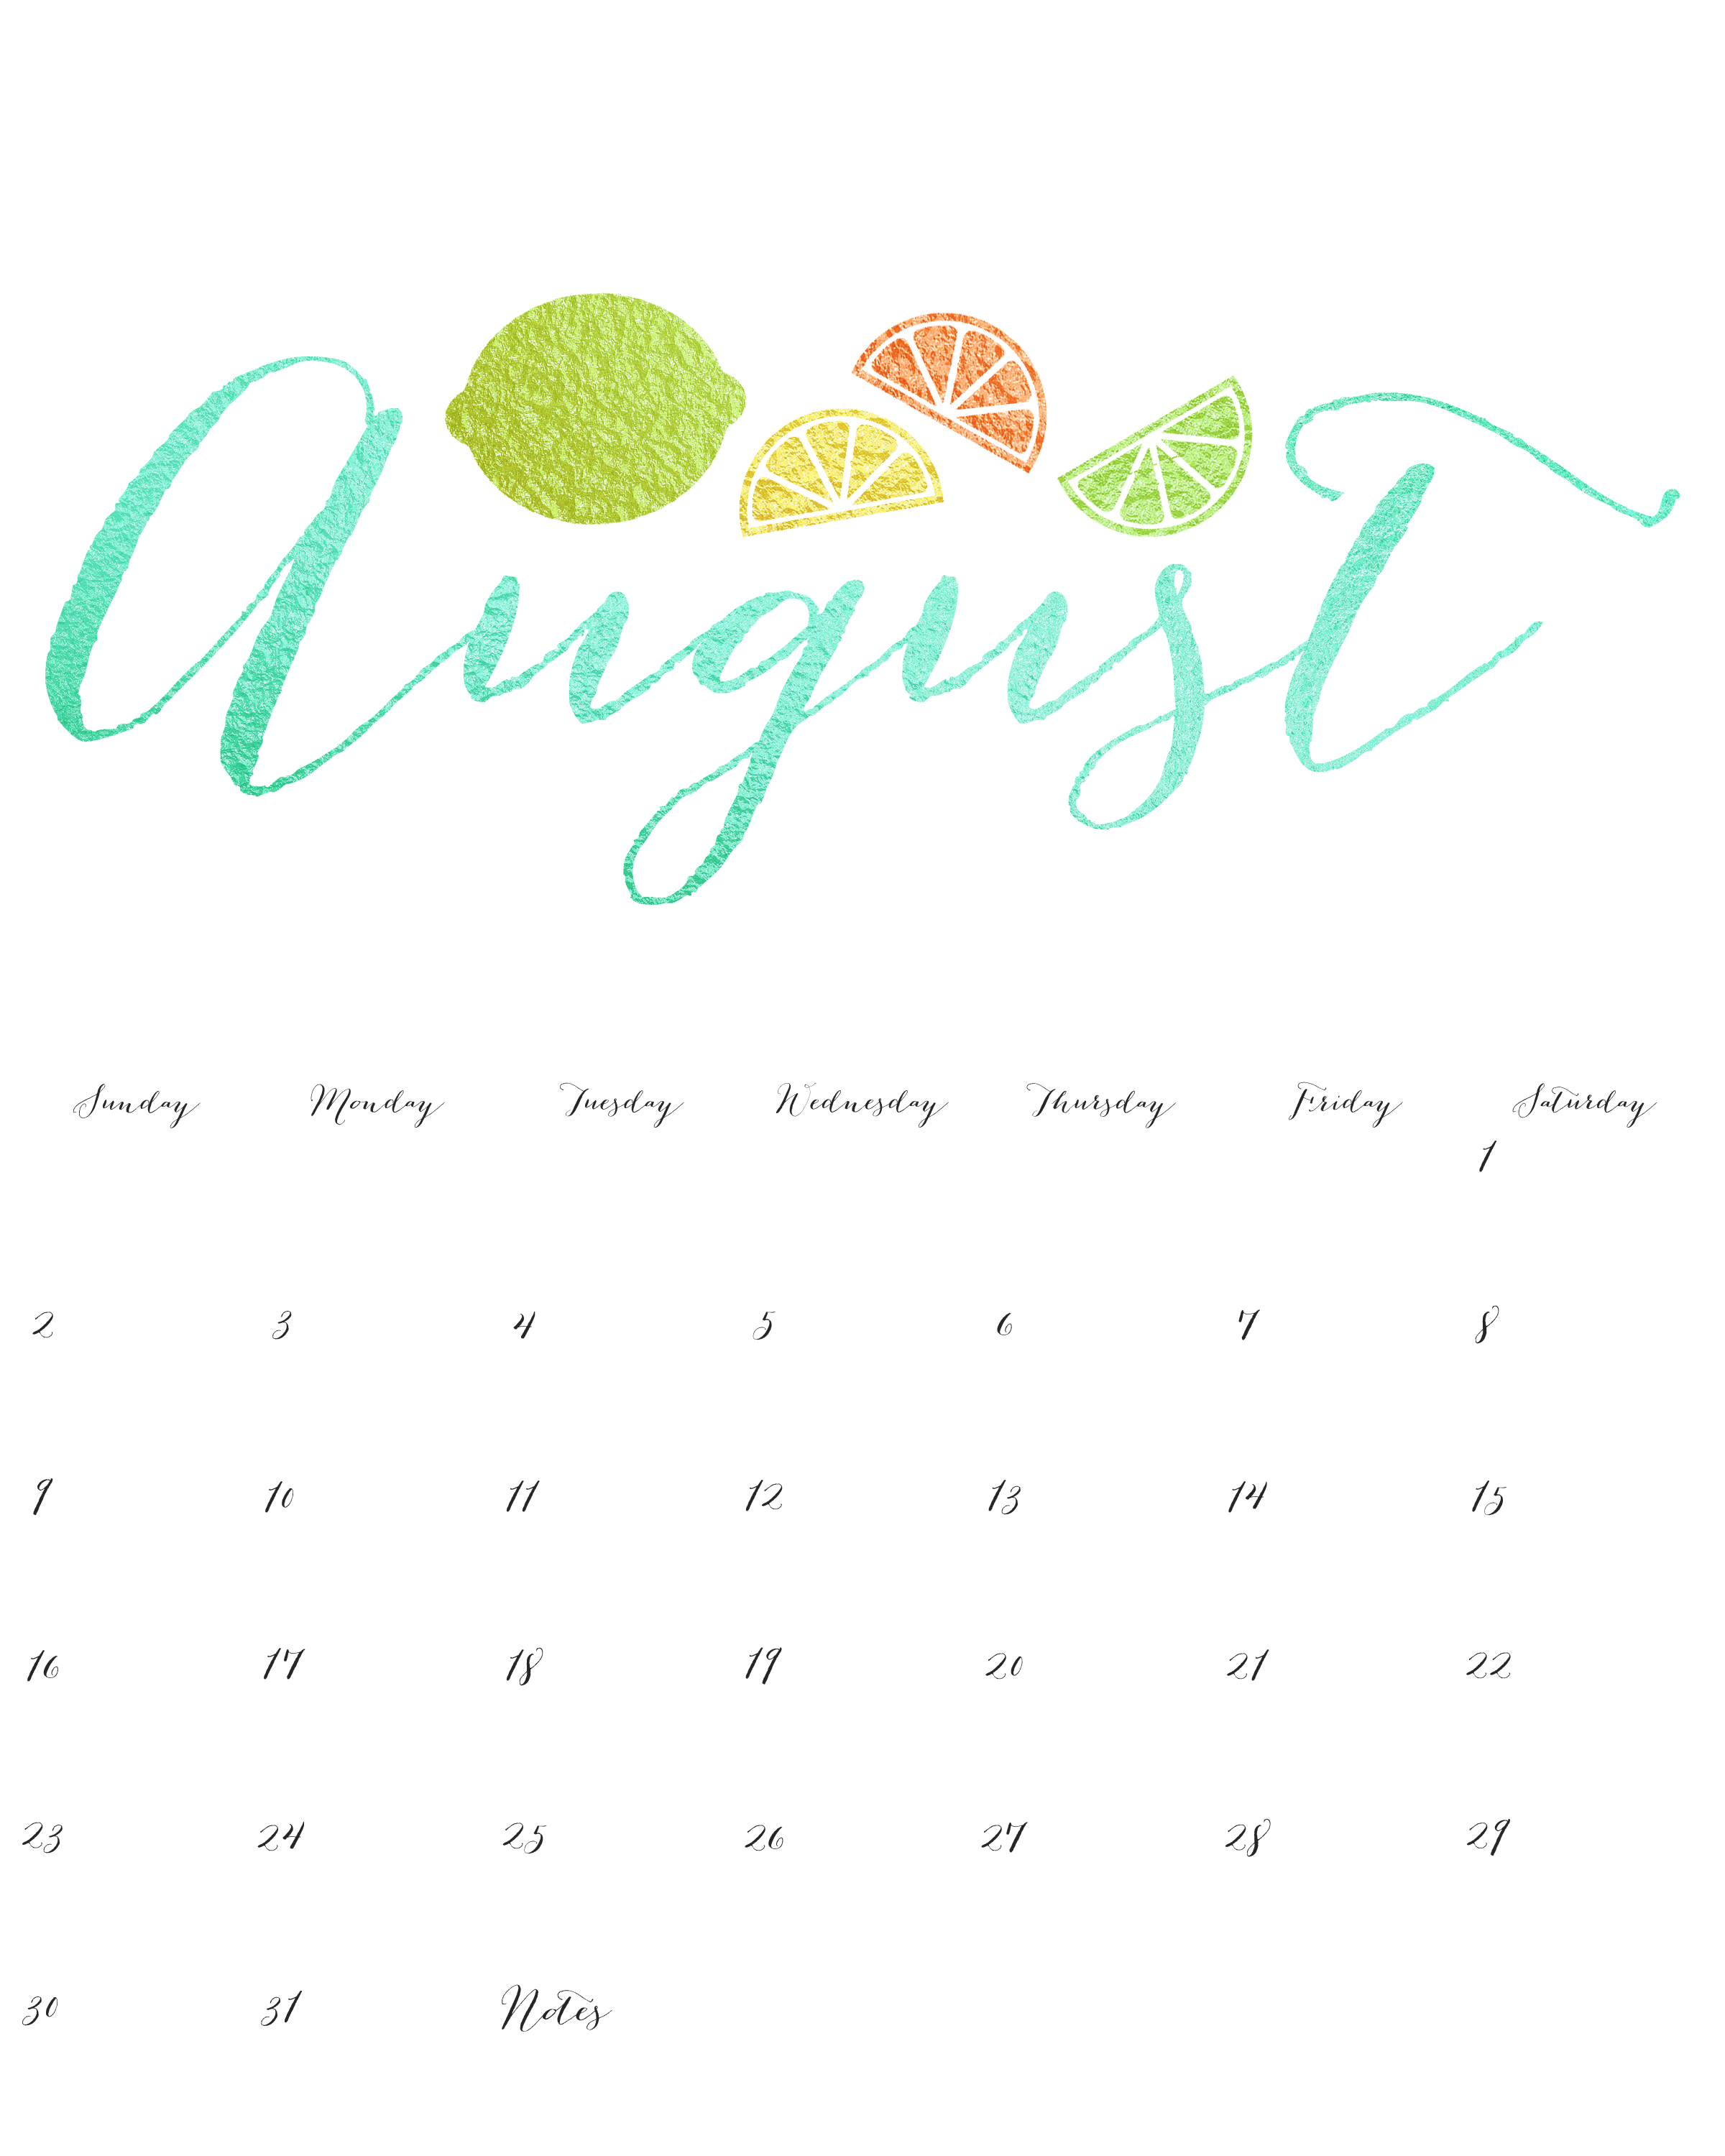 August 2015 calendar clipart picture royalty free download Oltre 1000 idee su August 2015 Calendar su Pinterest picture royalty free download